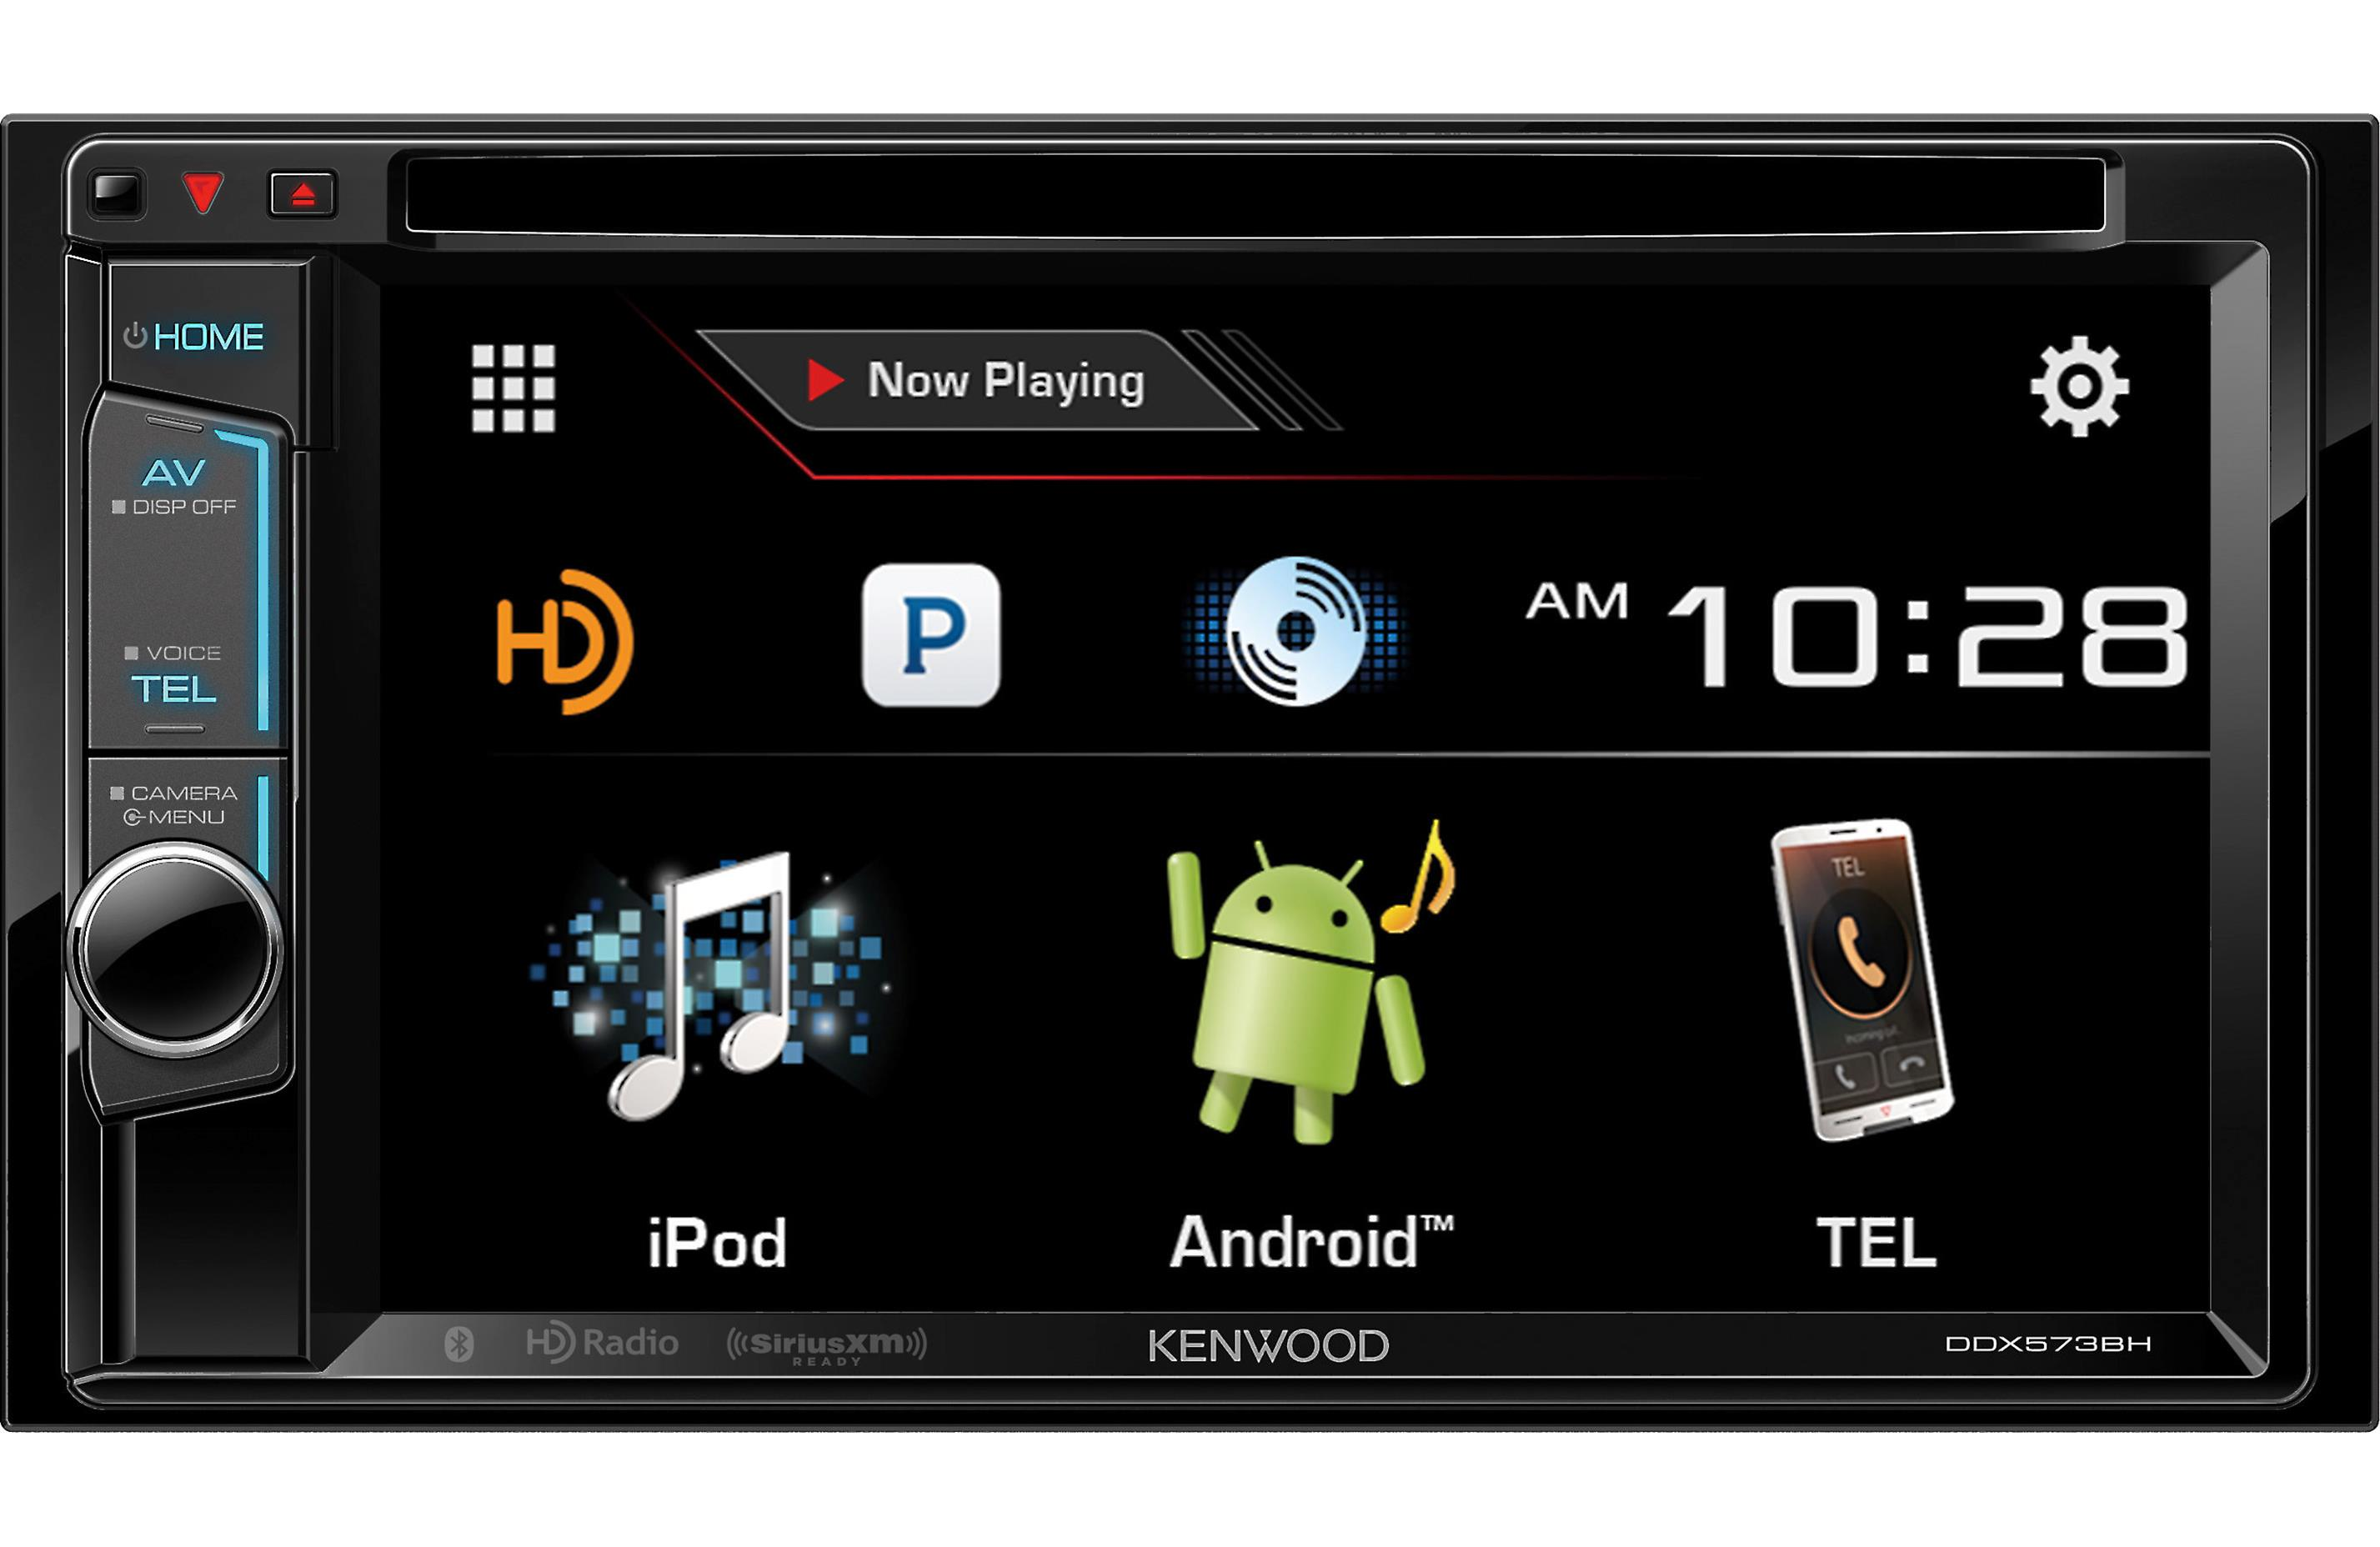 Details about Kenwood DDX574BH DVD/CD Player Android iPhone App HD Radio  Bluetooth SiriusXM